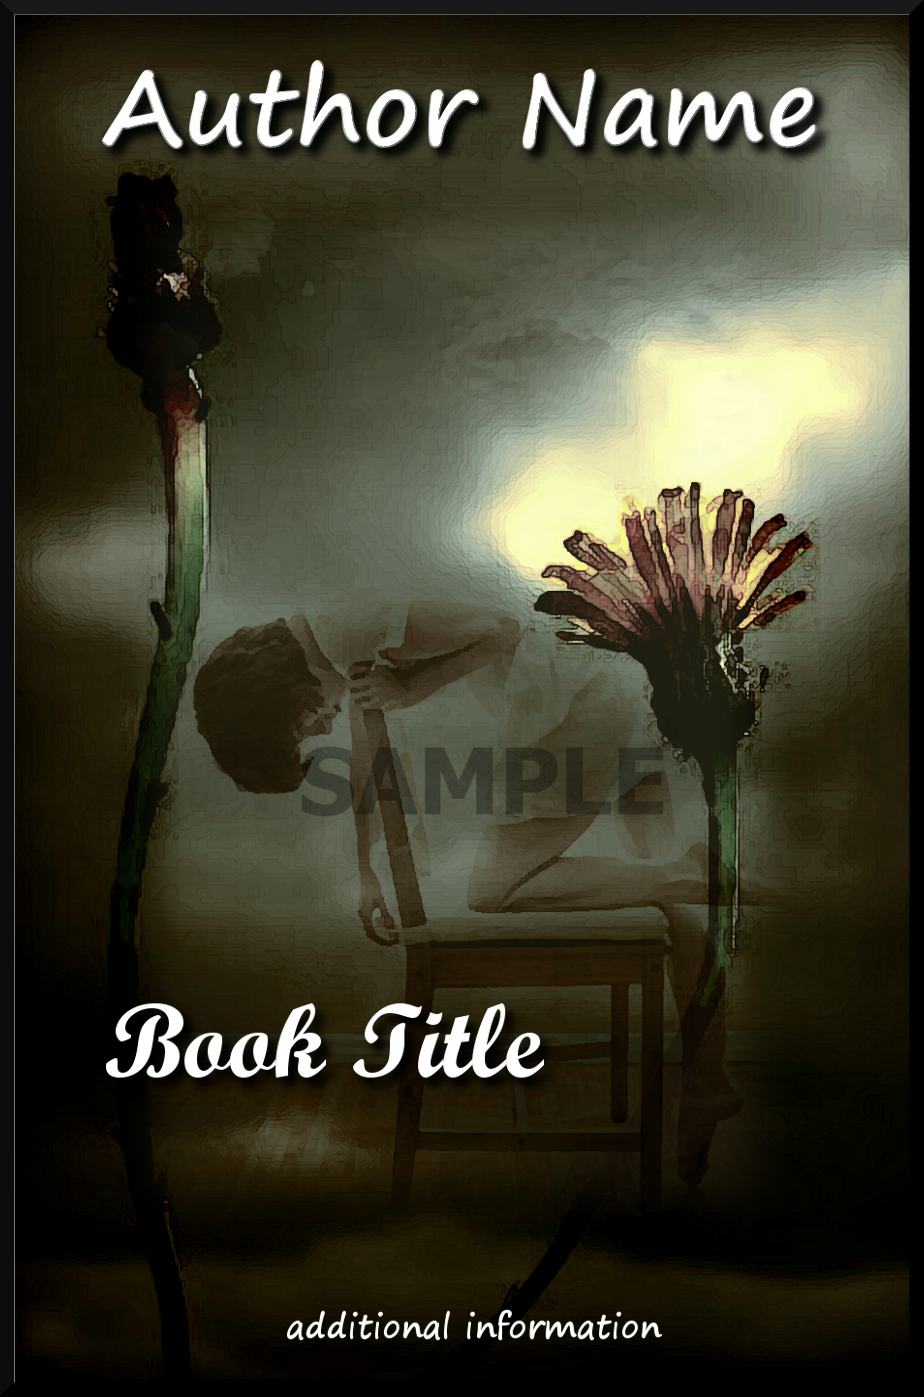 Book cover service expanded with samples! | Tanja's Art Studio